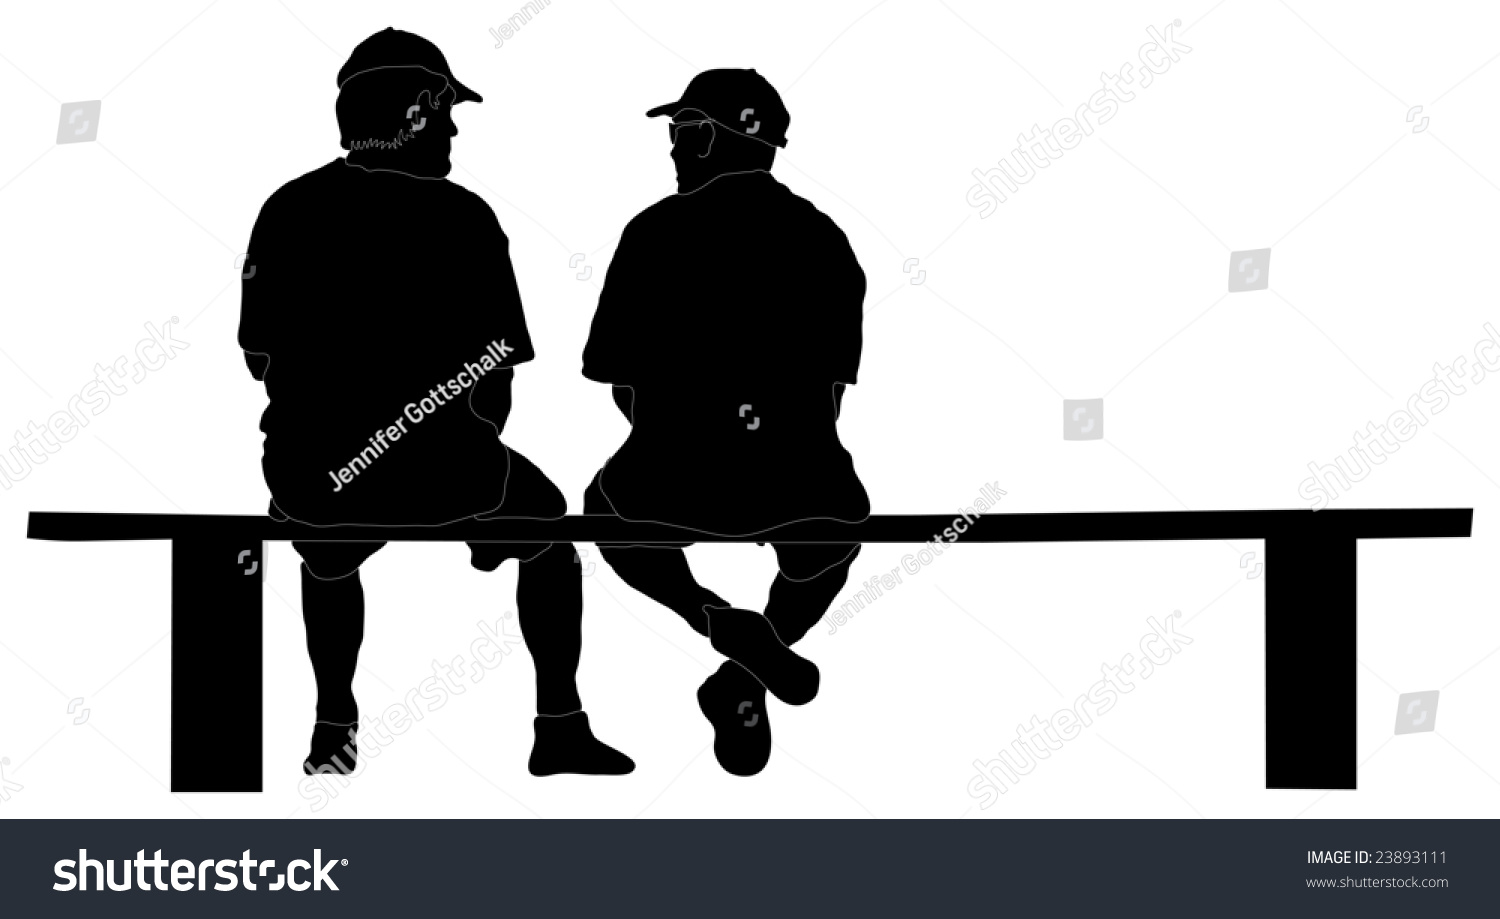 People On Bench Silhouette for People On Bench Silhouette  143gtk